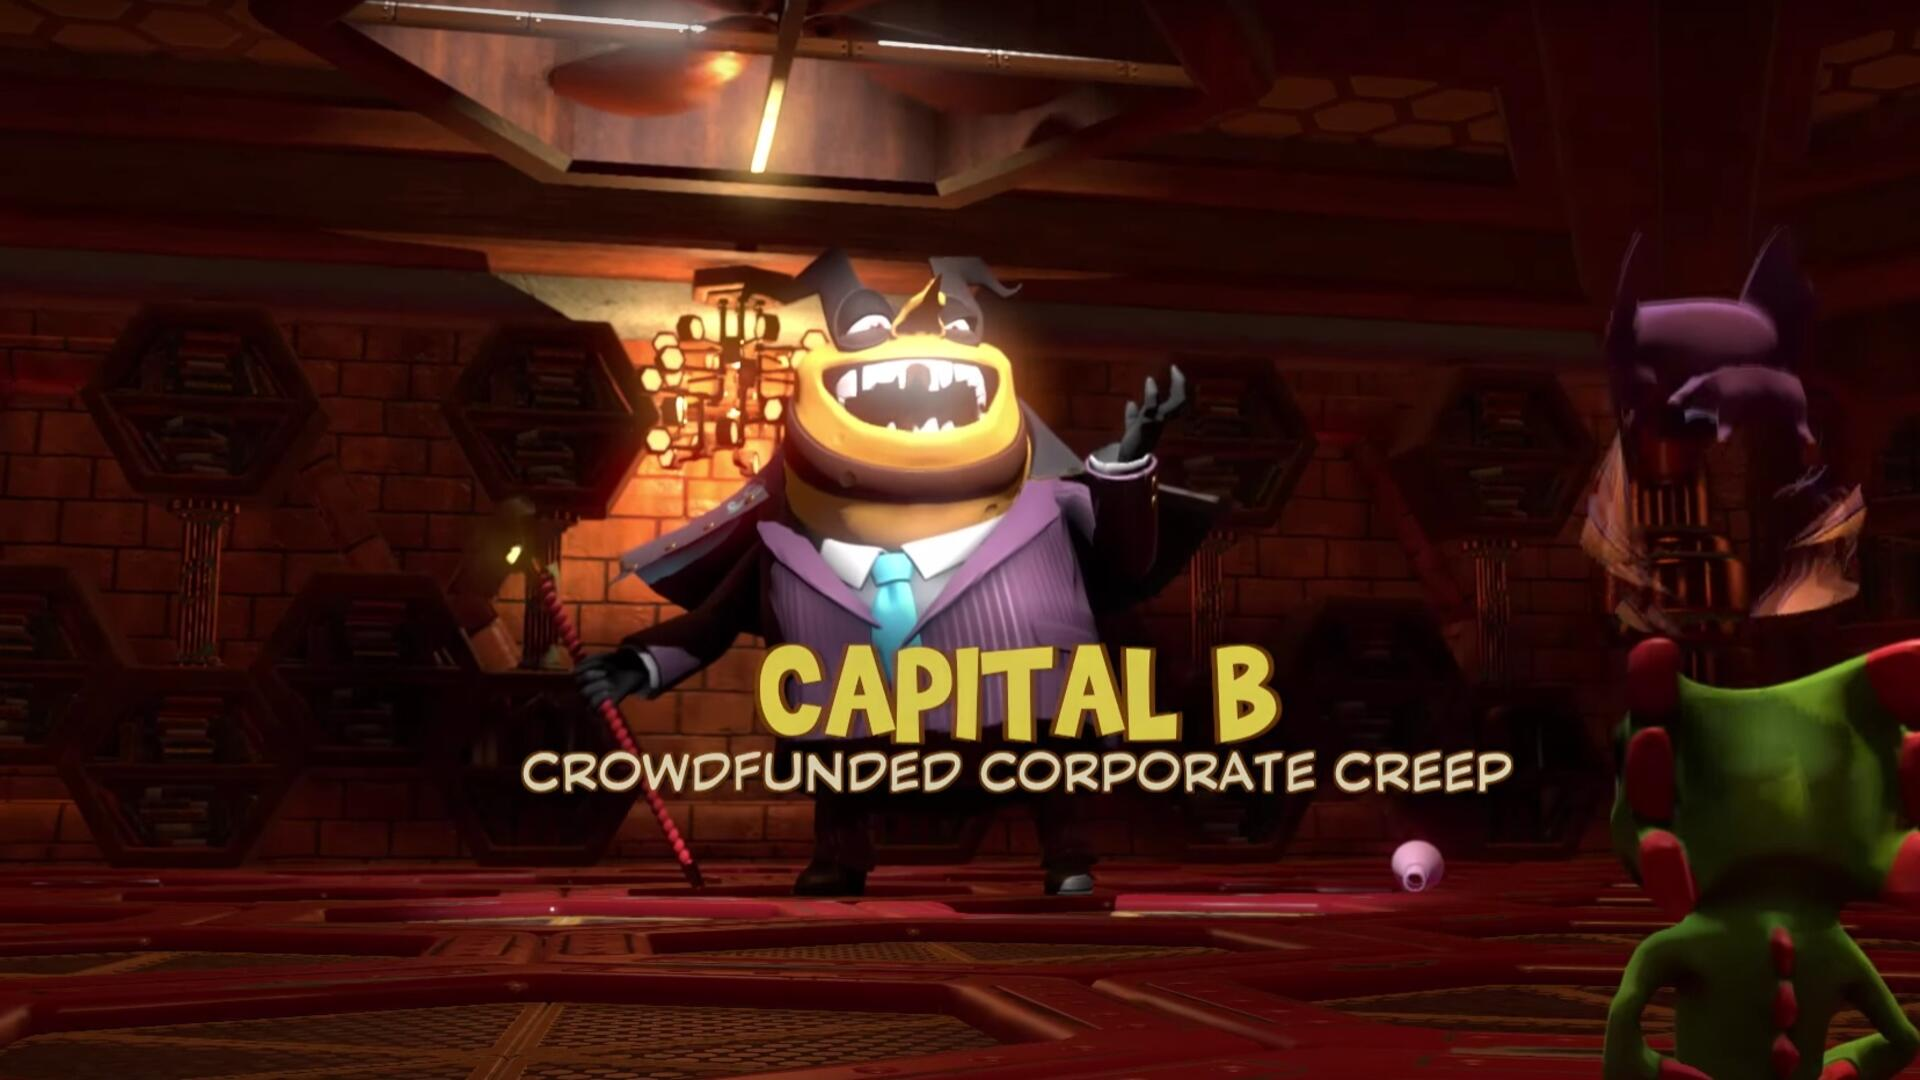 Yooka Laylee - How to Beat Capital B and Complete the Game, Final Boss Guide